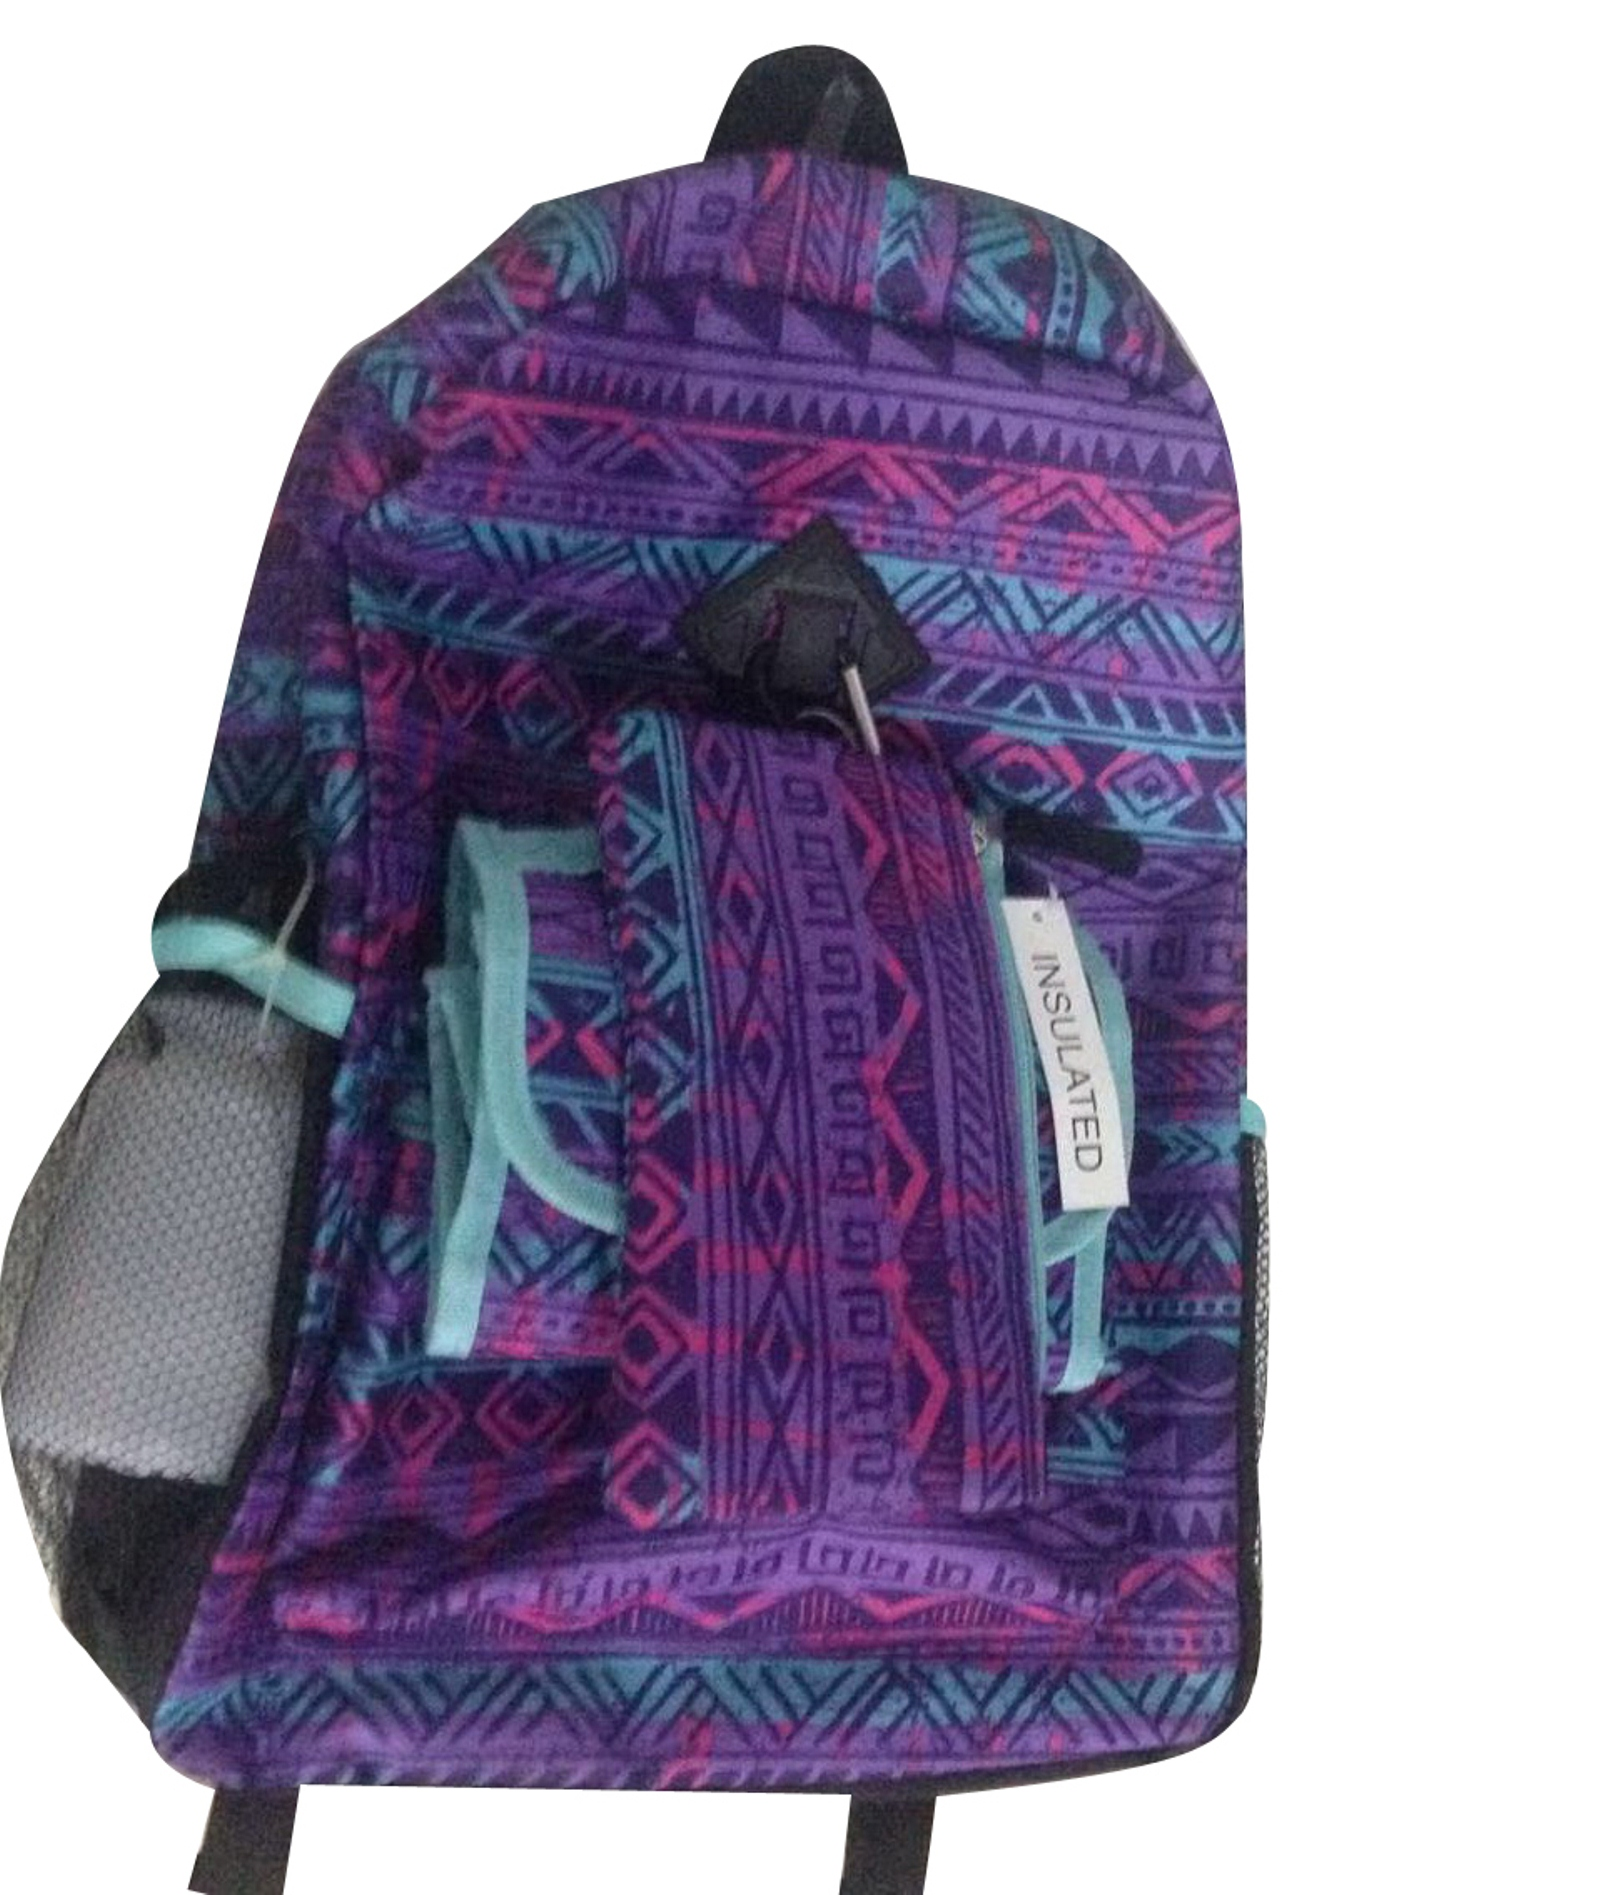 Accessories22 Girls 5 Piece Backpack Tribal Fitness